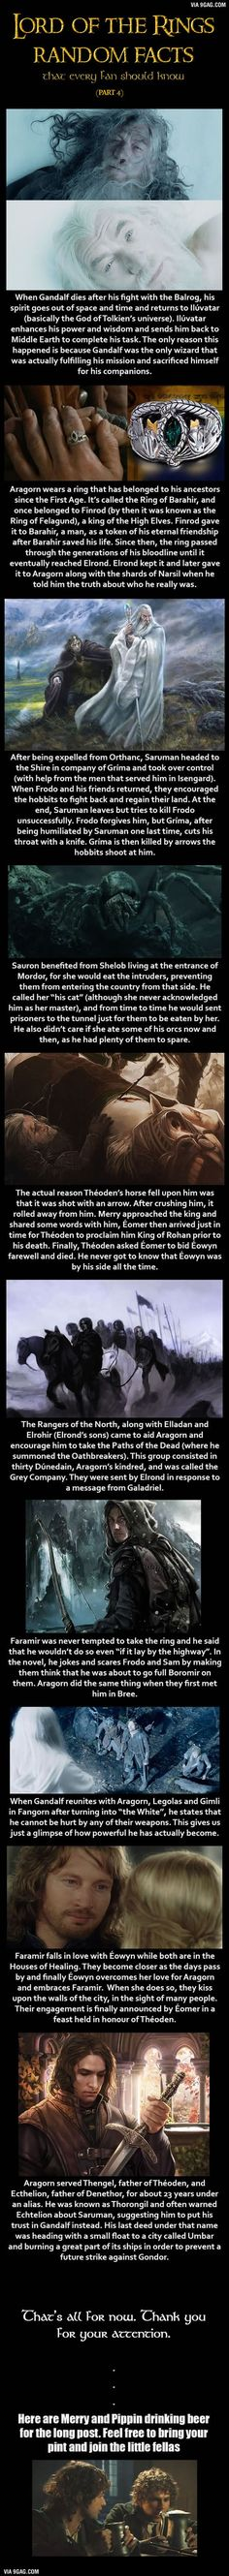 Here are some Lord of the Rings random facts (Part 4):